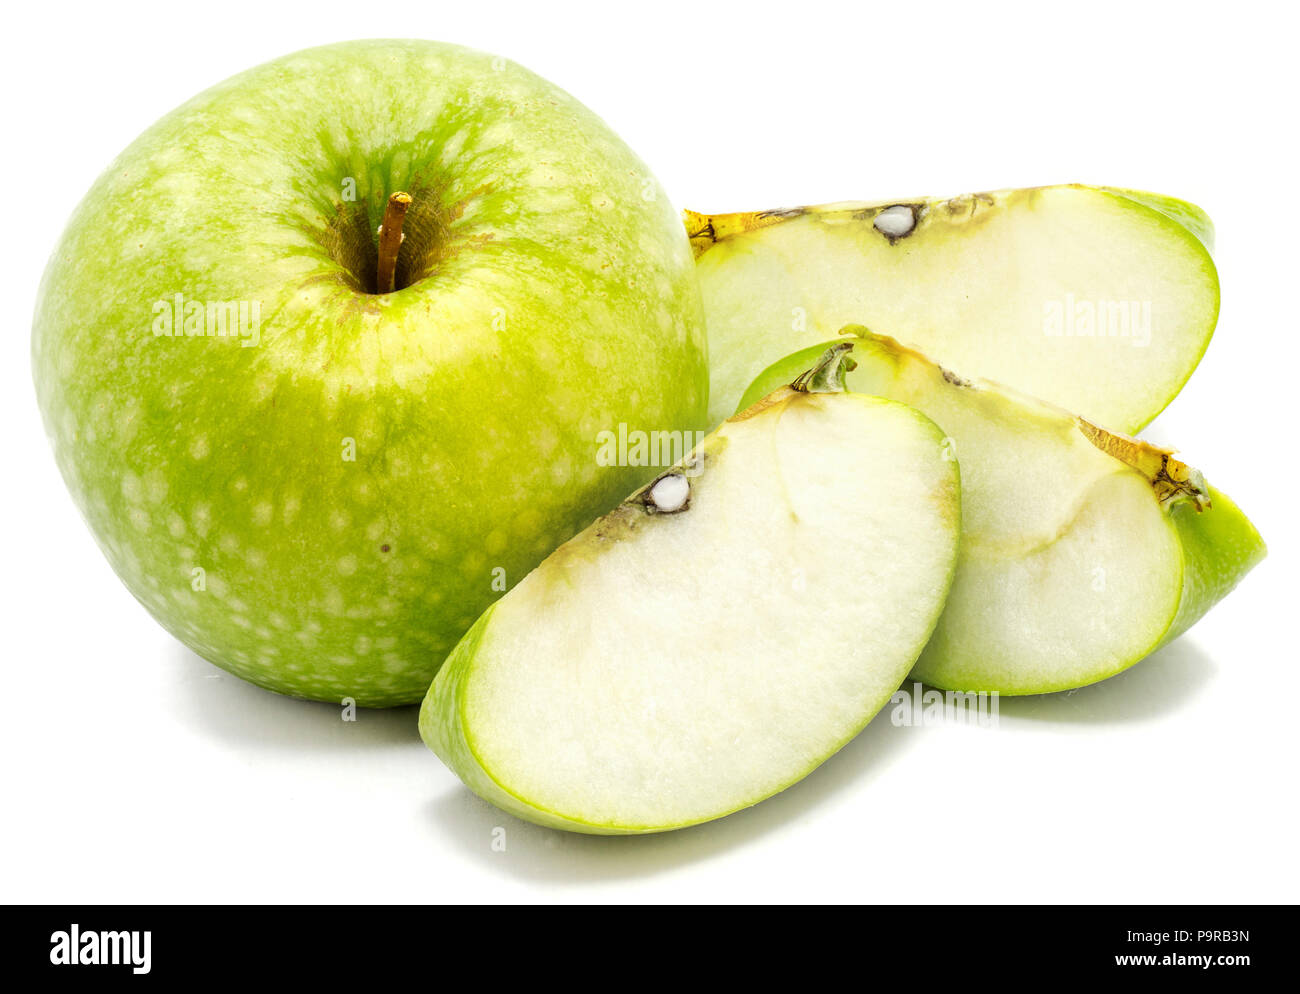 One whole apple Granny Smith and three slices isolated on white background - Stock Image